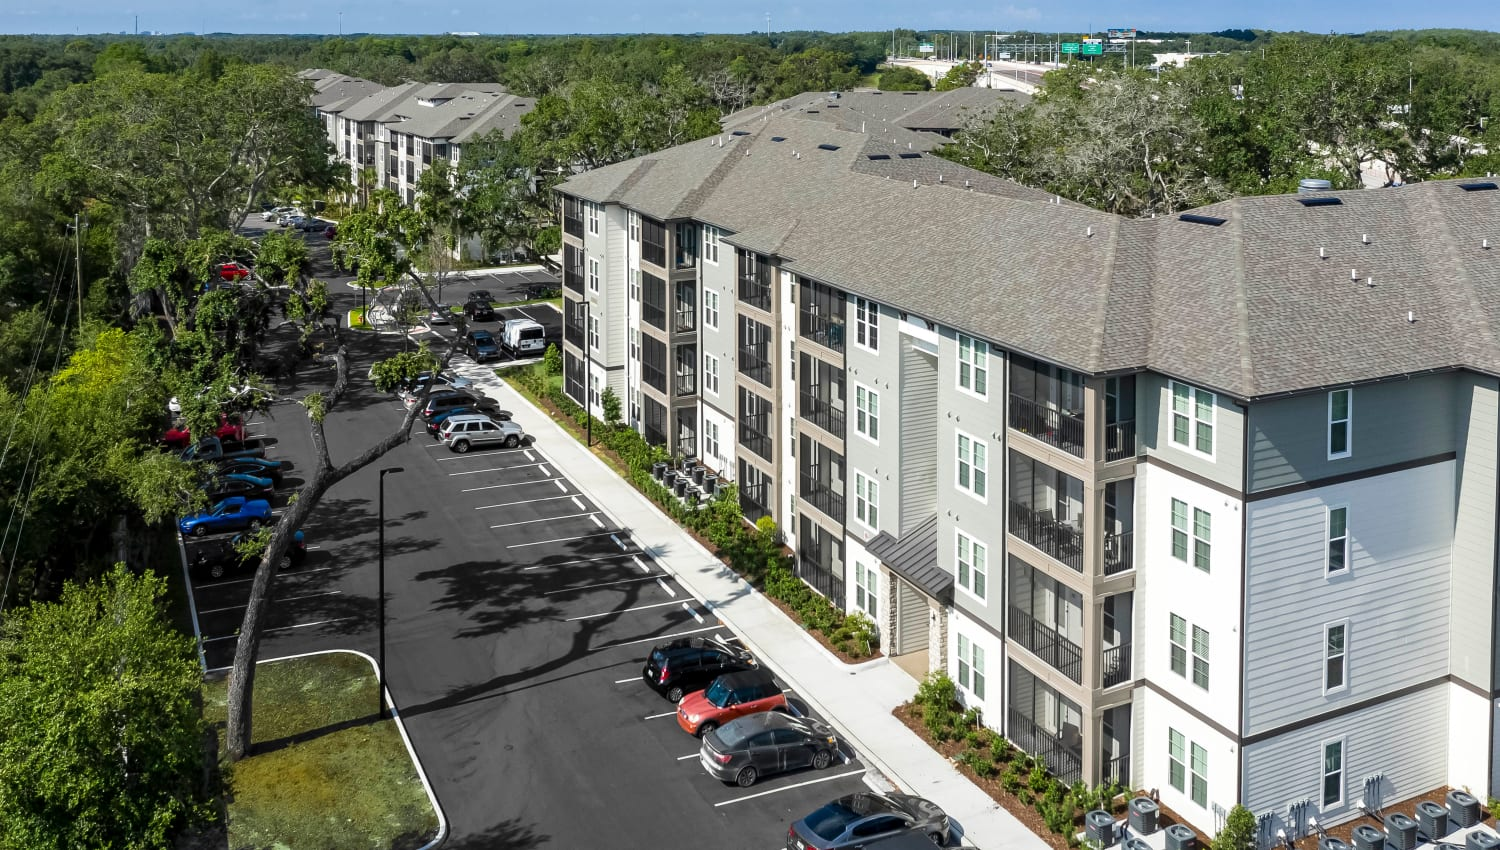 Aerial view of resident buildings with plenty of parking out front at Canopy at Citrus Park in Tampa, Florida